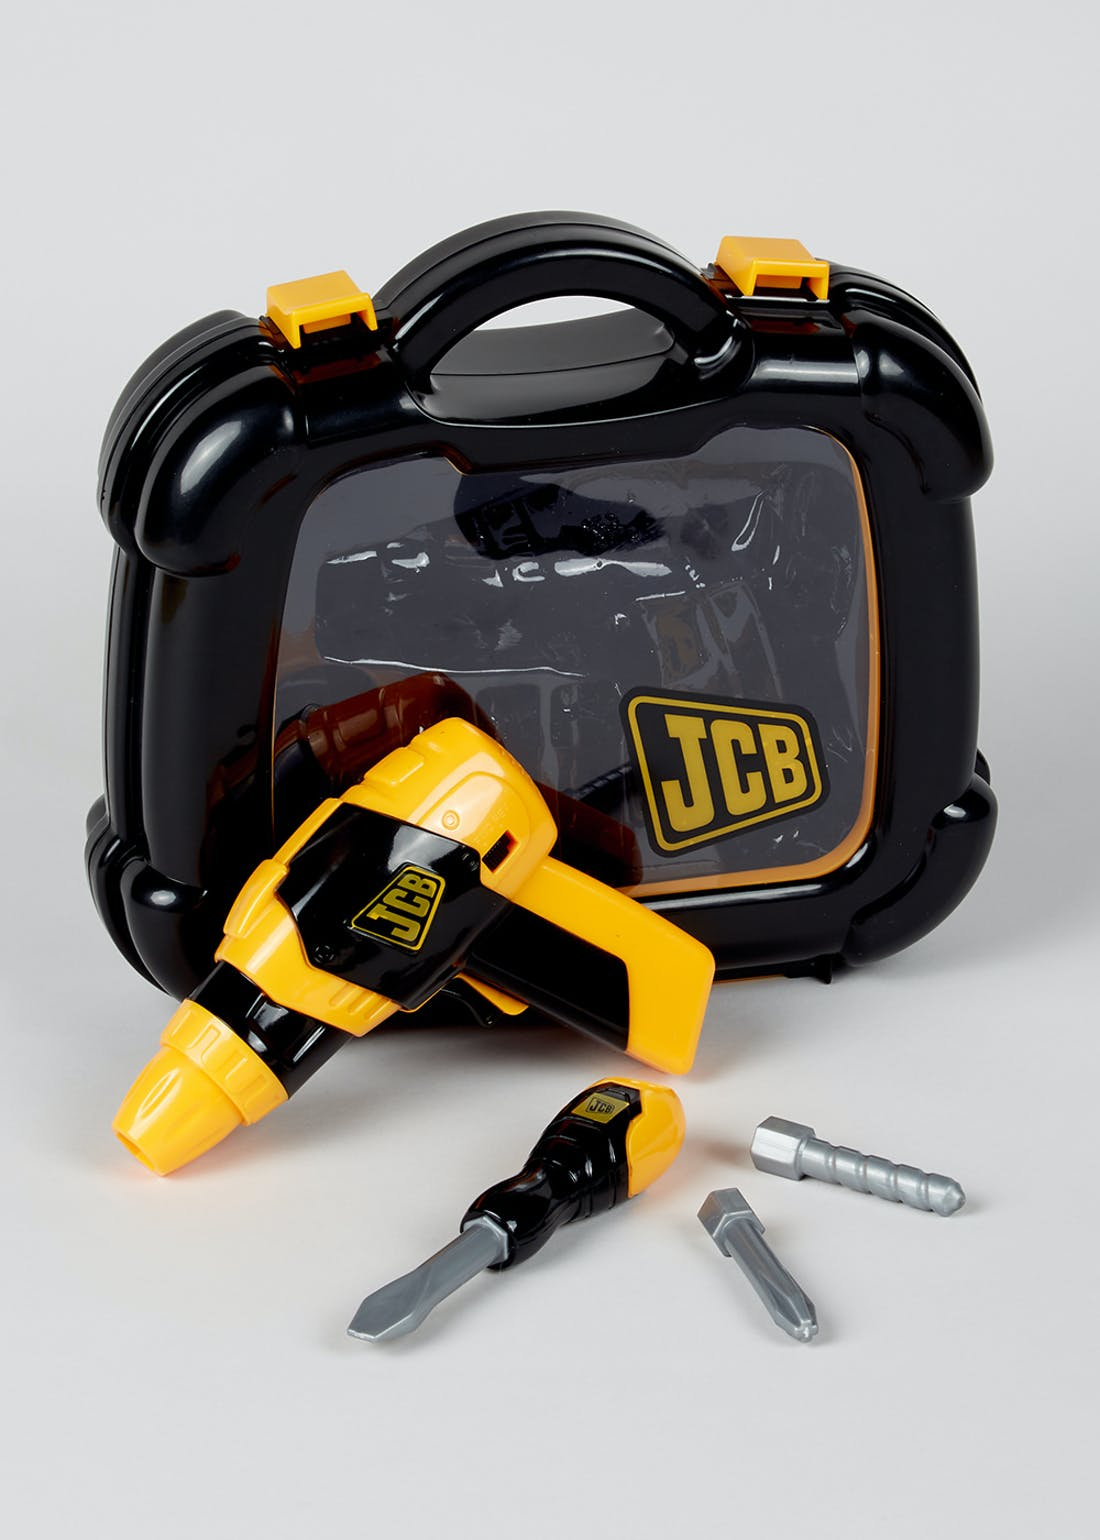 JCB Toy Drill Set (25cm x 25cm x 8cm)